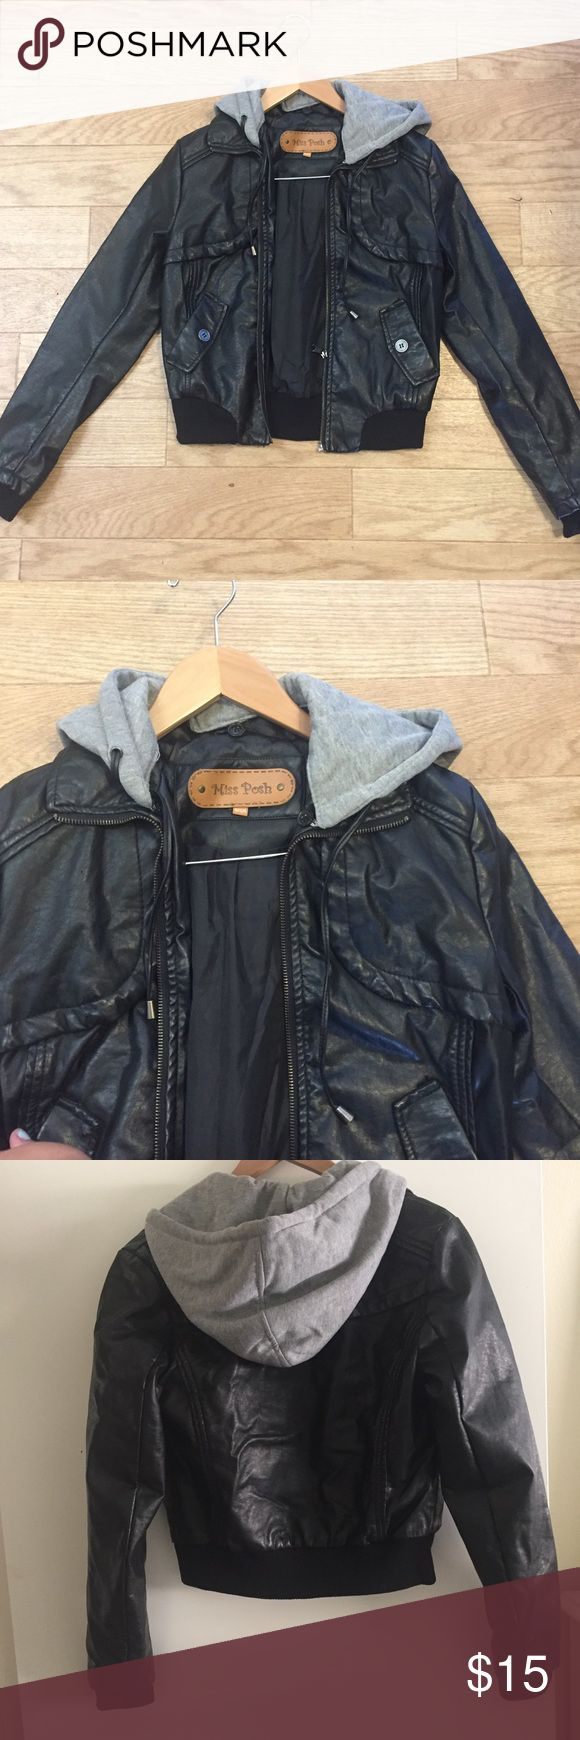 Black Faux Leather Jacket ⬛️⬛️⬛️ Comfortable and warm jacket. Worn only a few times. In great condition, no tears, missing buttons nor stains. Removal hood. Jackets & Coats Utility Jackets